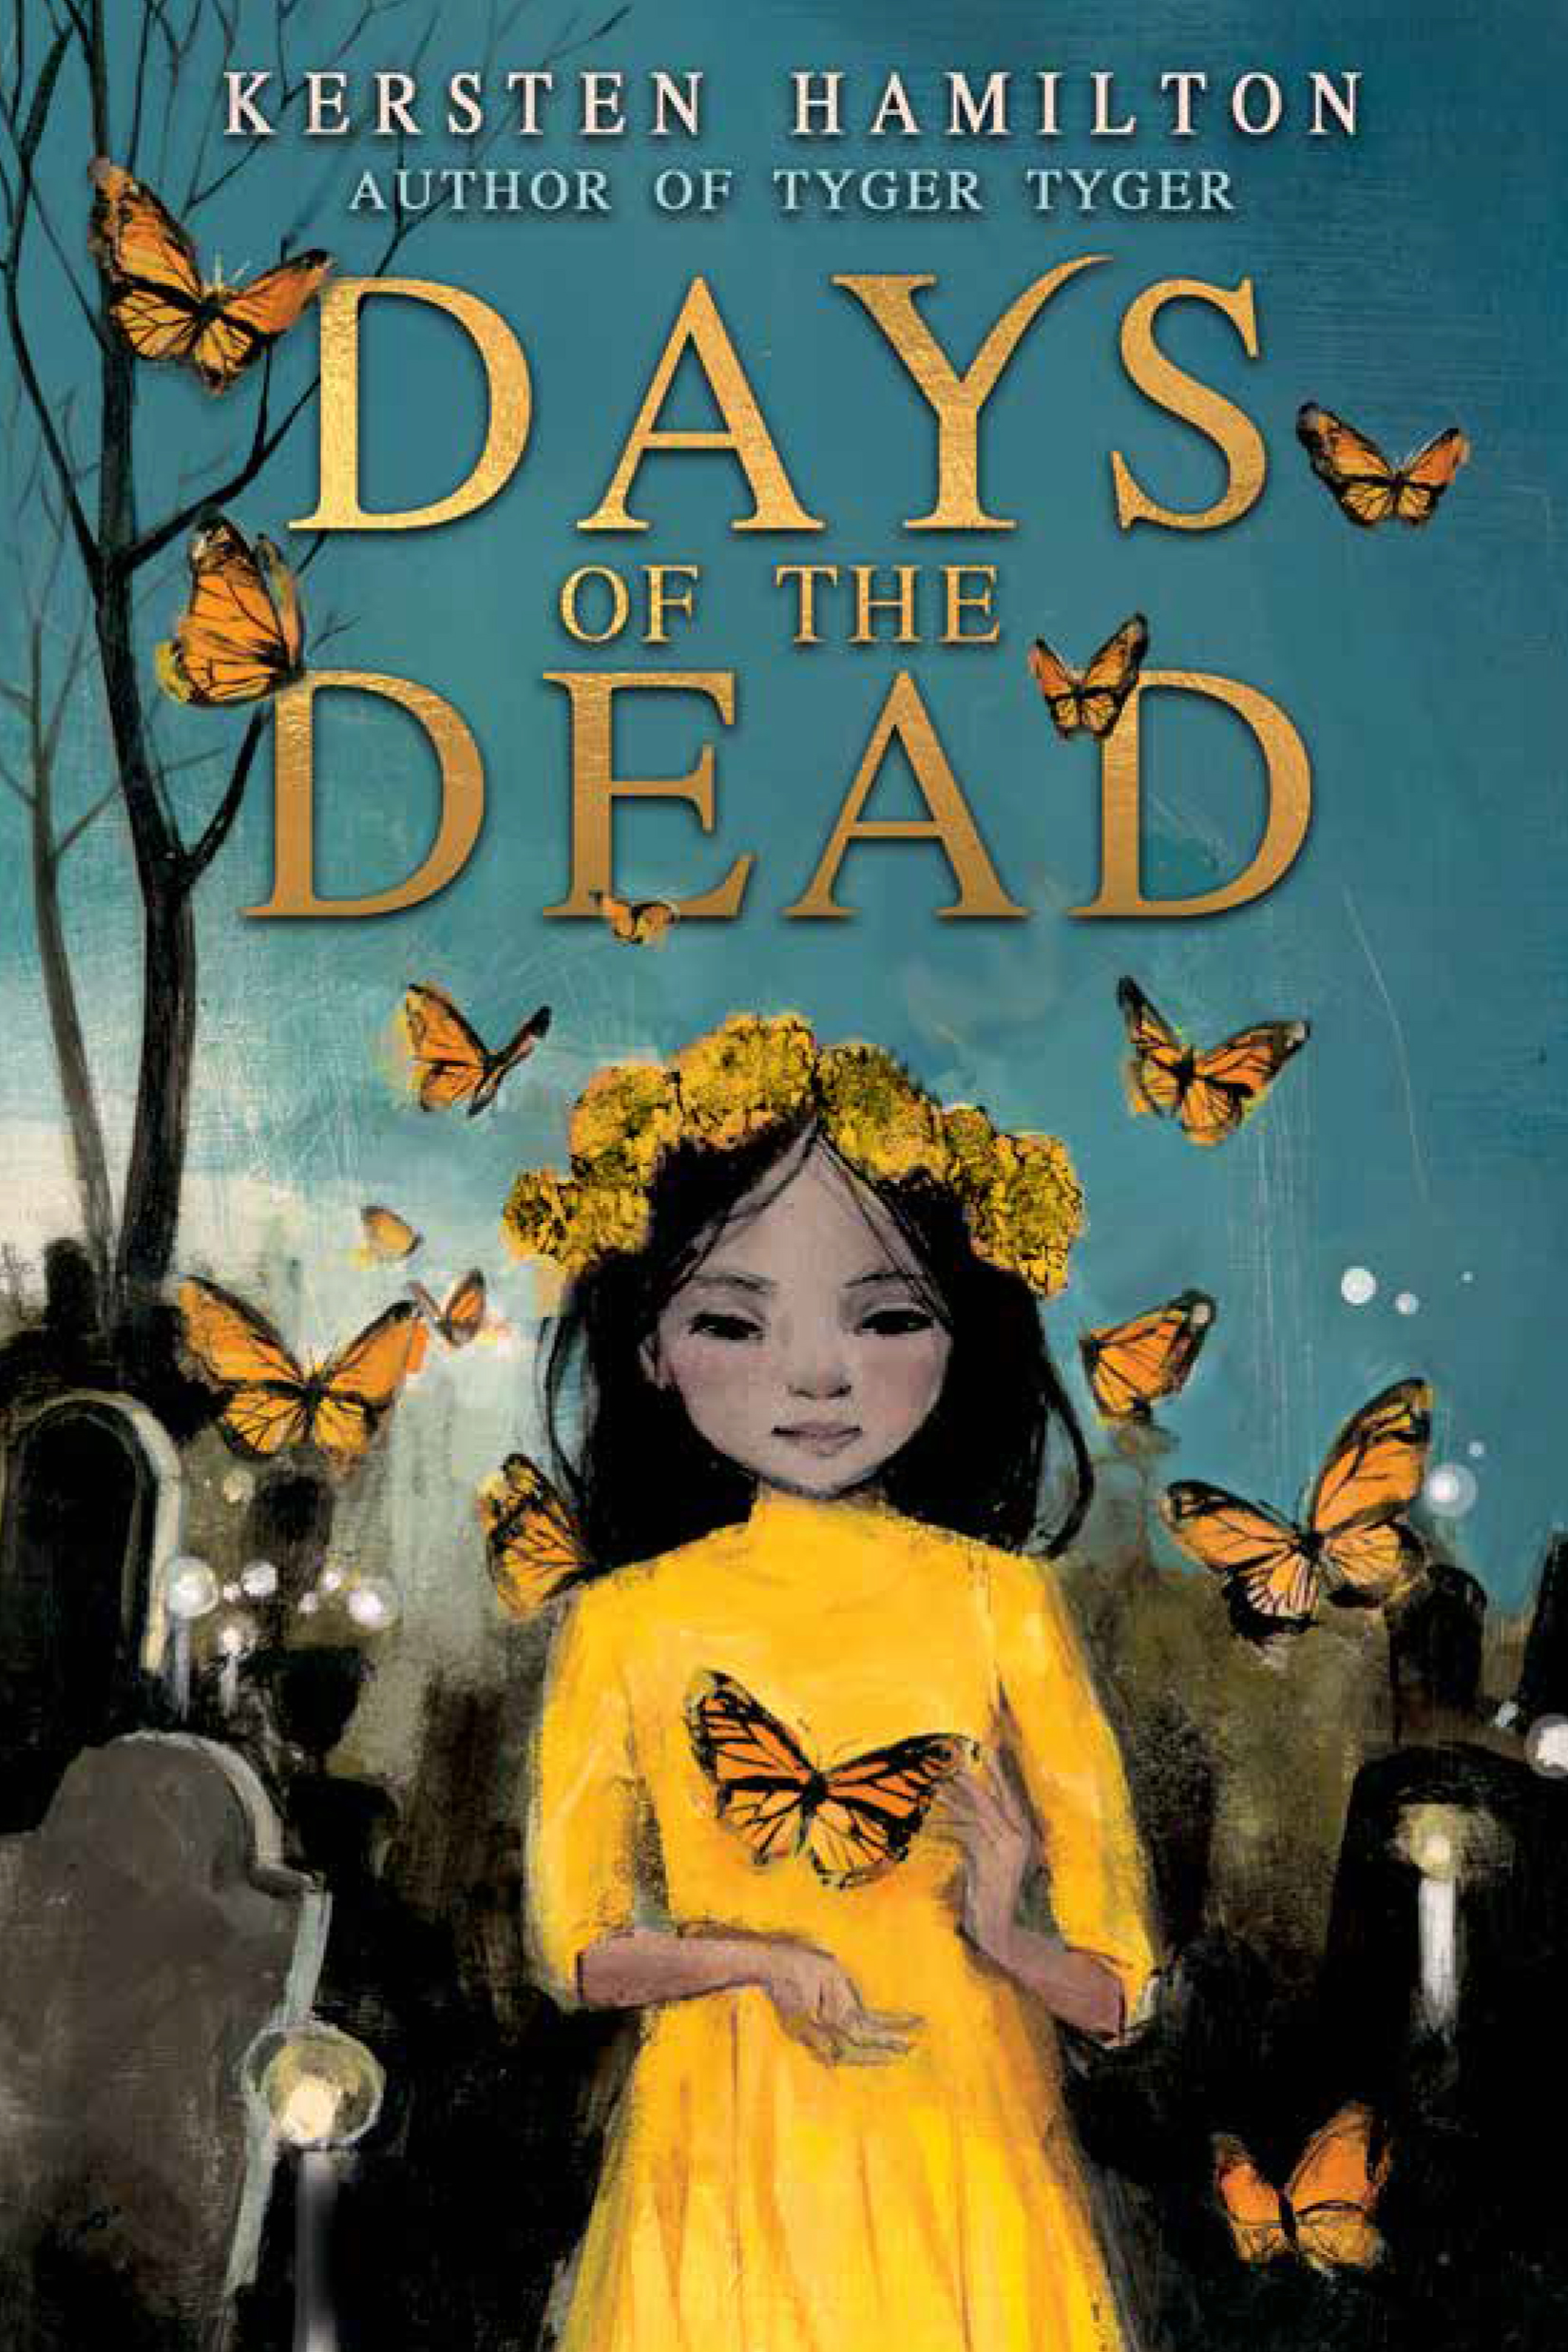 Days of the Dead_9781510728585_FC.jpg